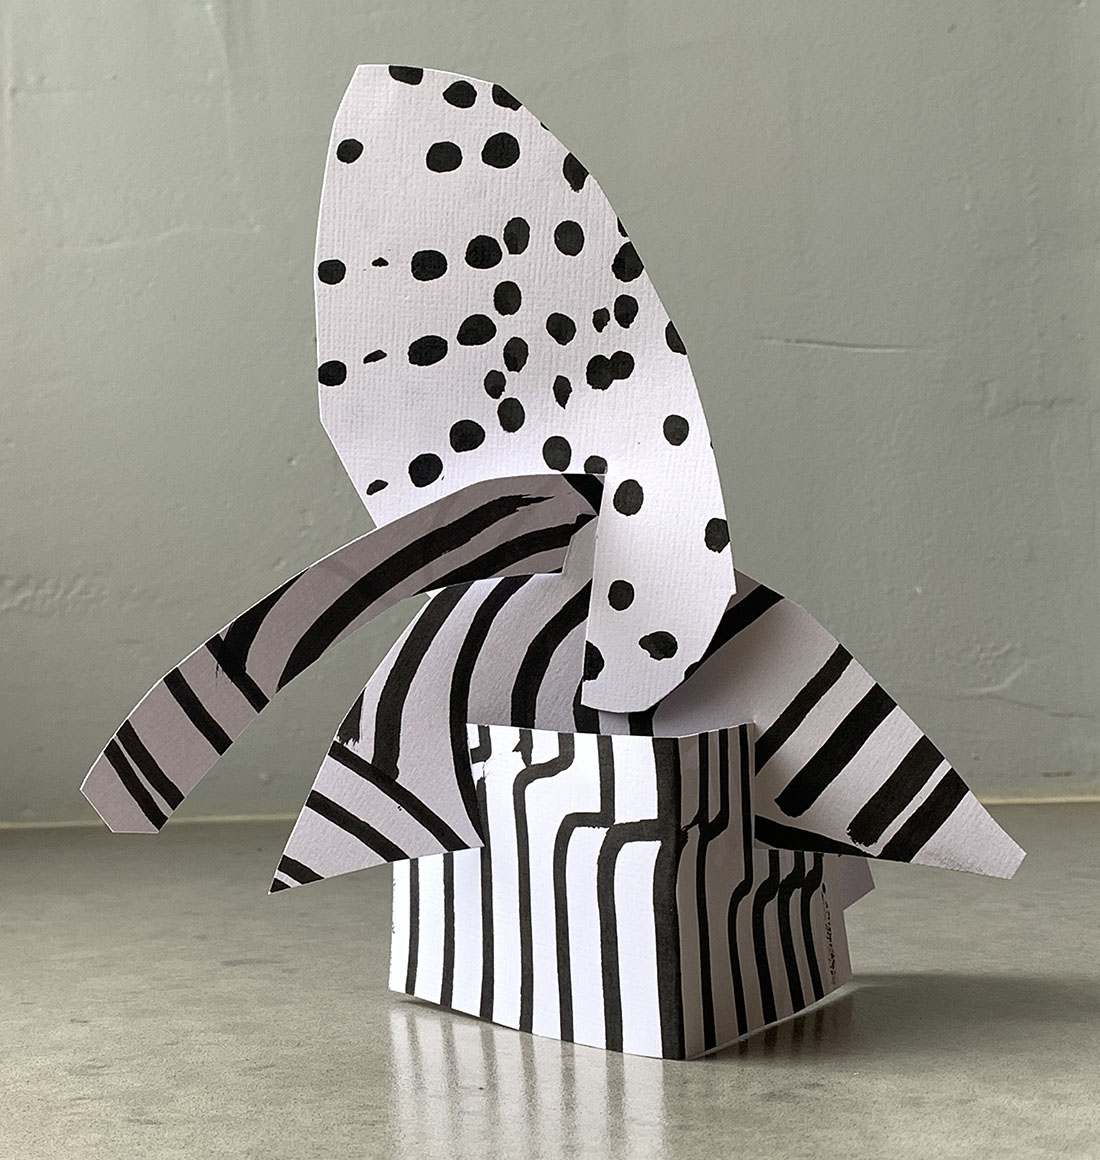 Make a sculpture without glue or tape and a drawing tool using items you have at home.